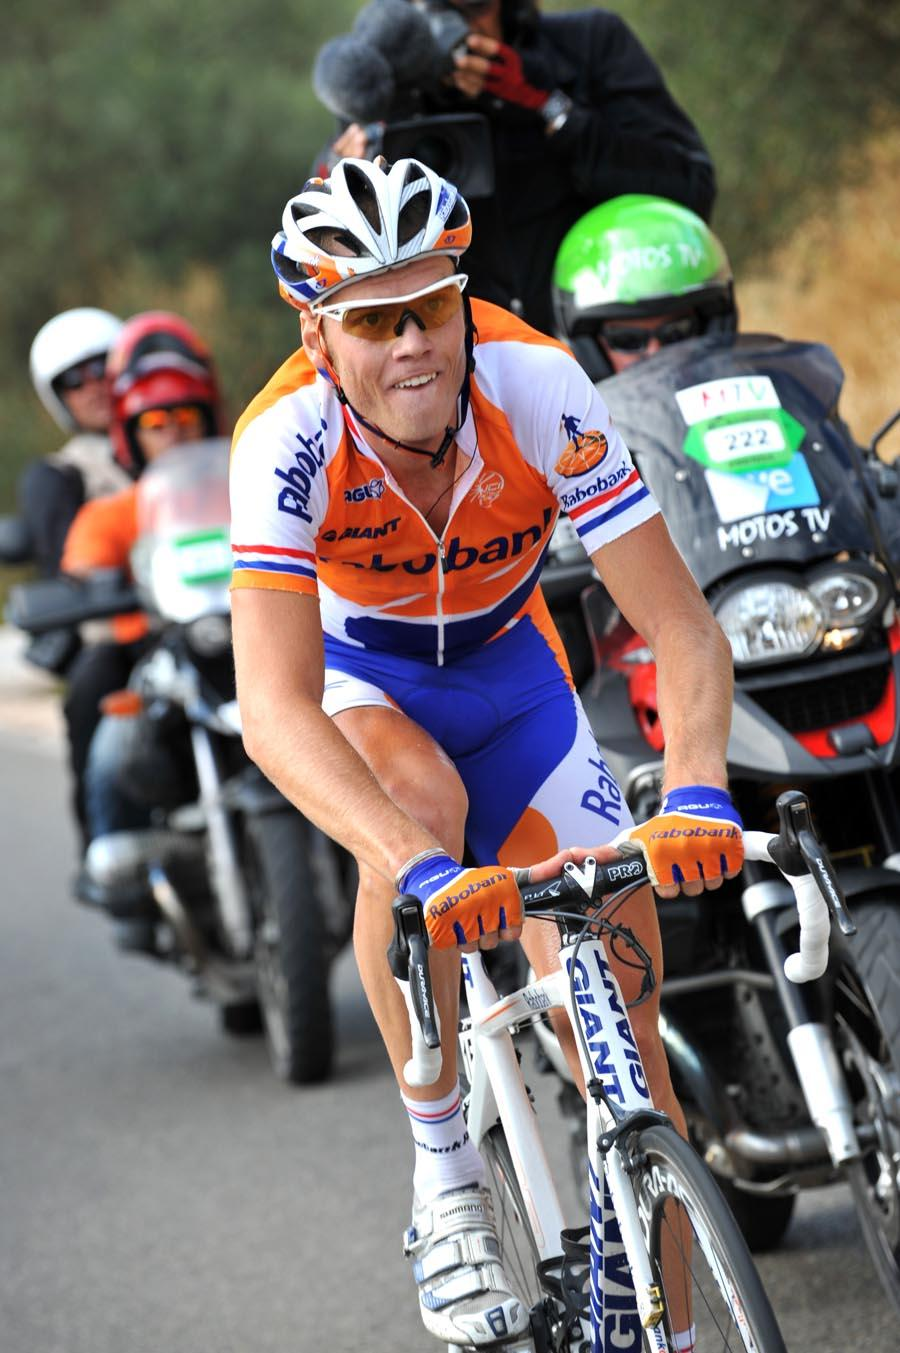 Lars Boom on his way to winning Stage 15 of the 2009 Vuelta © Unipublic